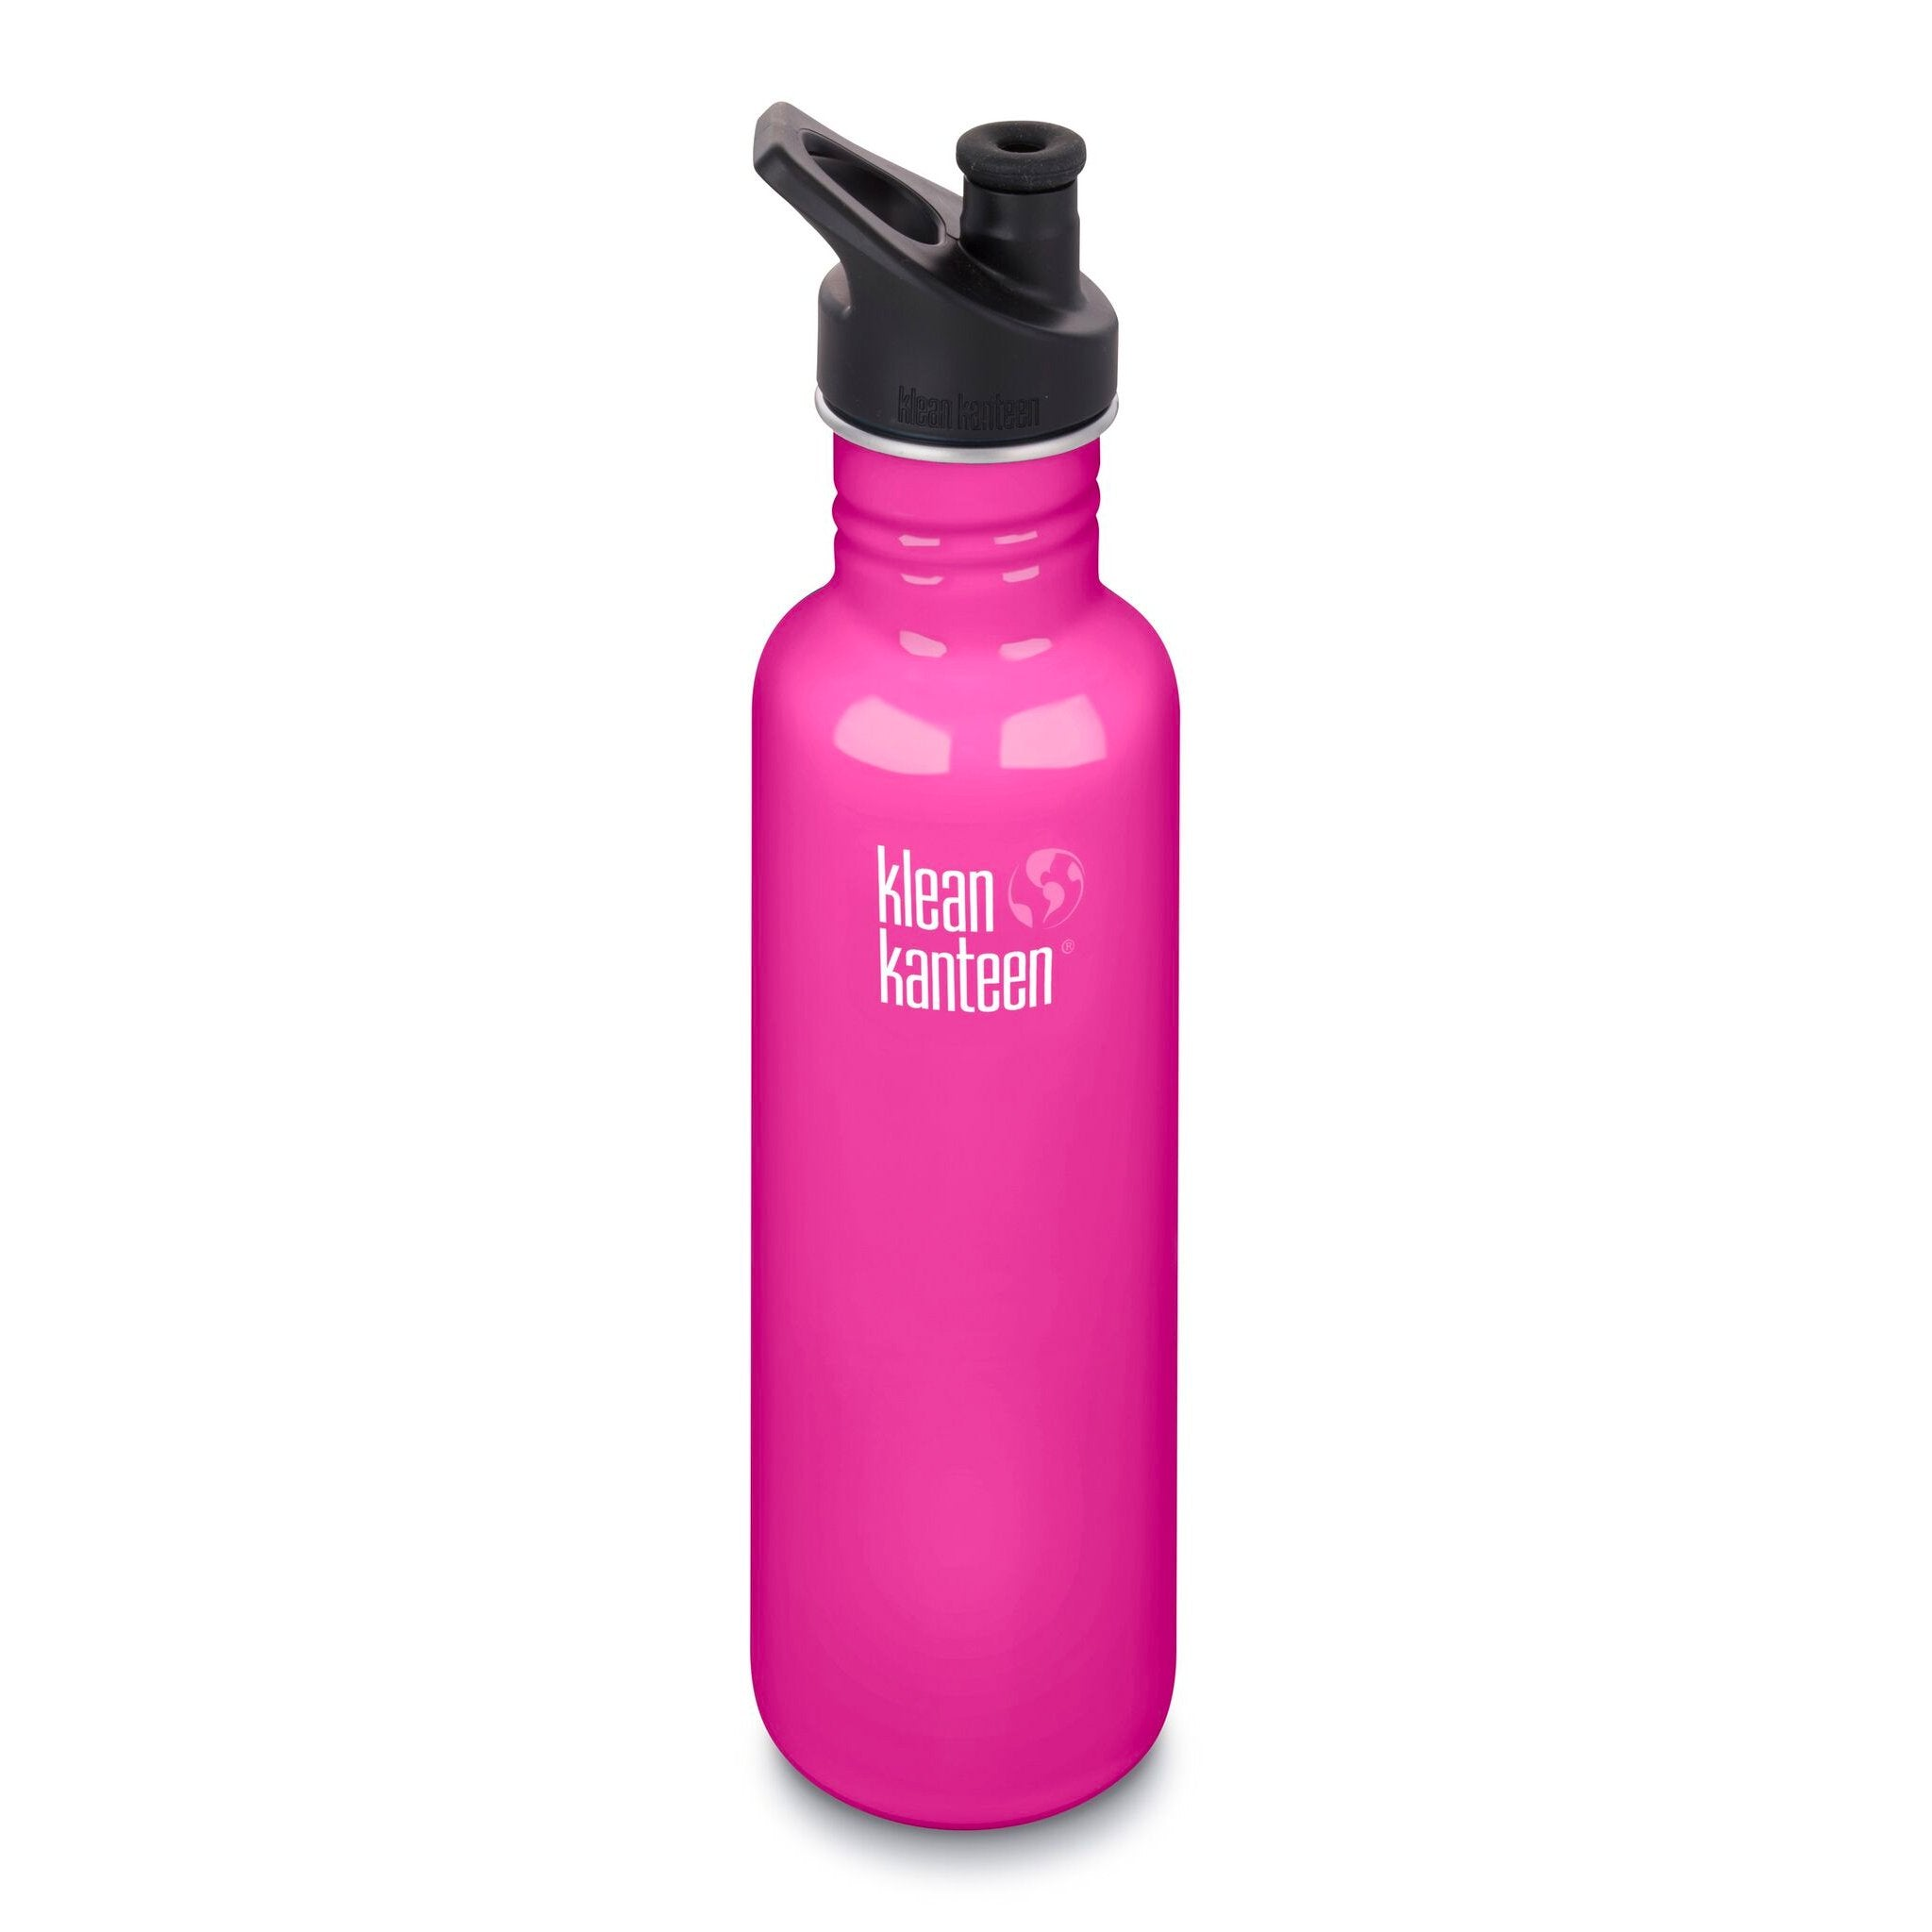 Klean Kanteen Stainless Steel Classic Water Bottle Klean Kanteen Water Bottles 800ml 27oz / Wild Orchid at Little Earth Nest Eco Shop